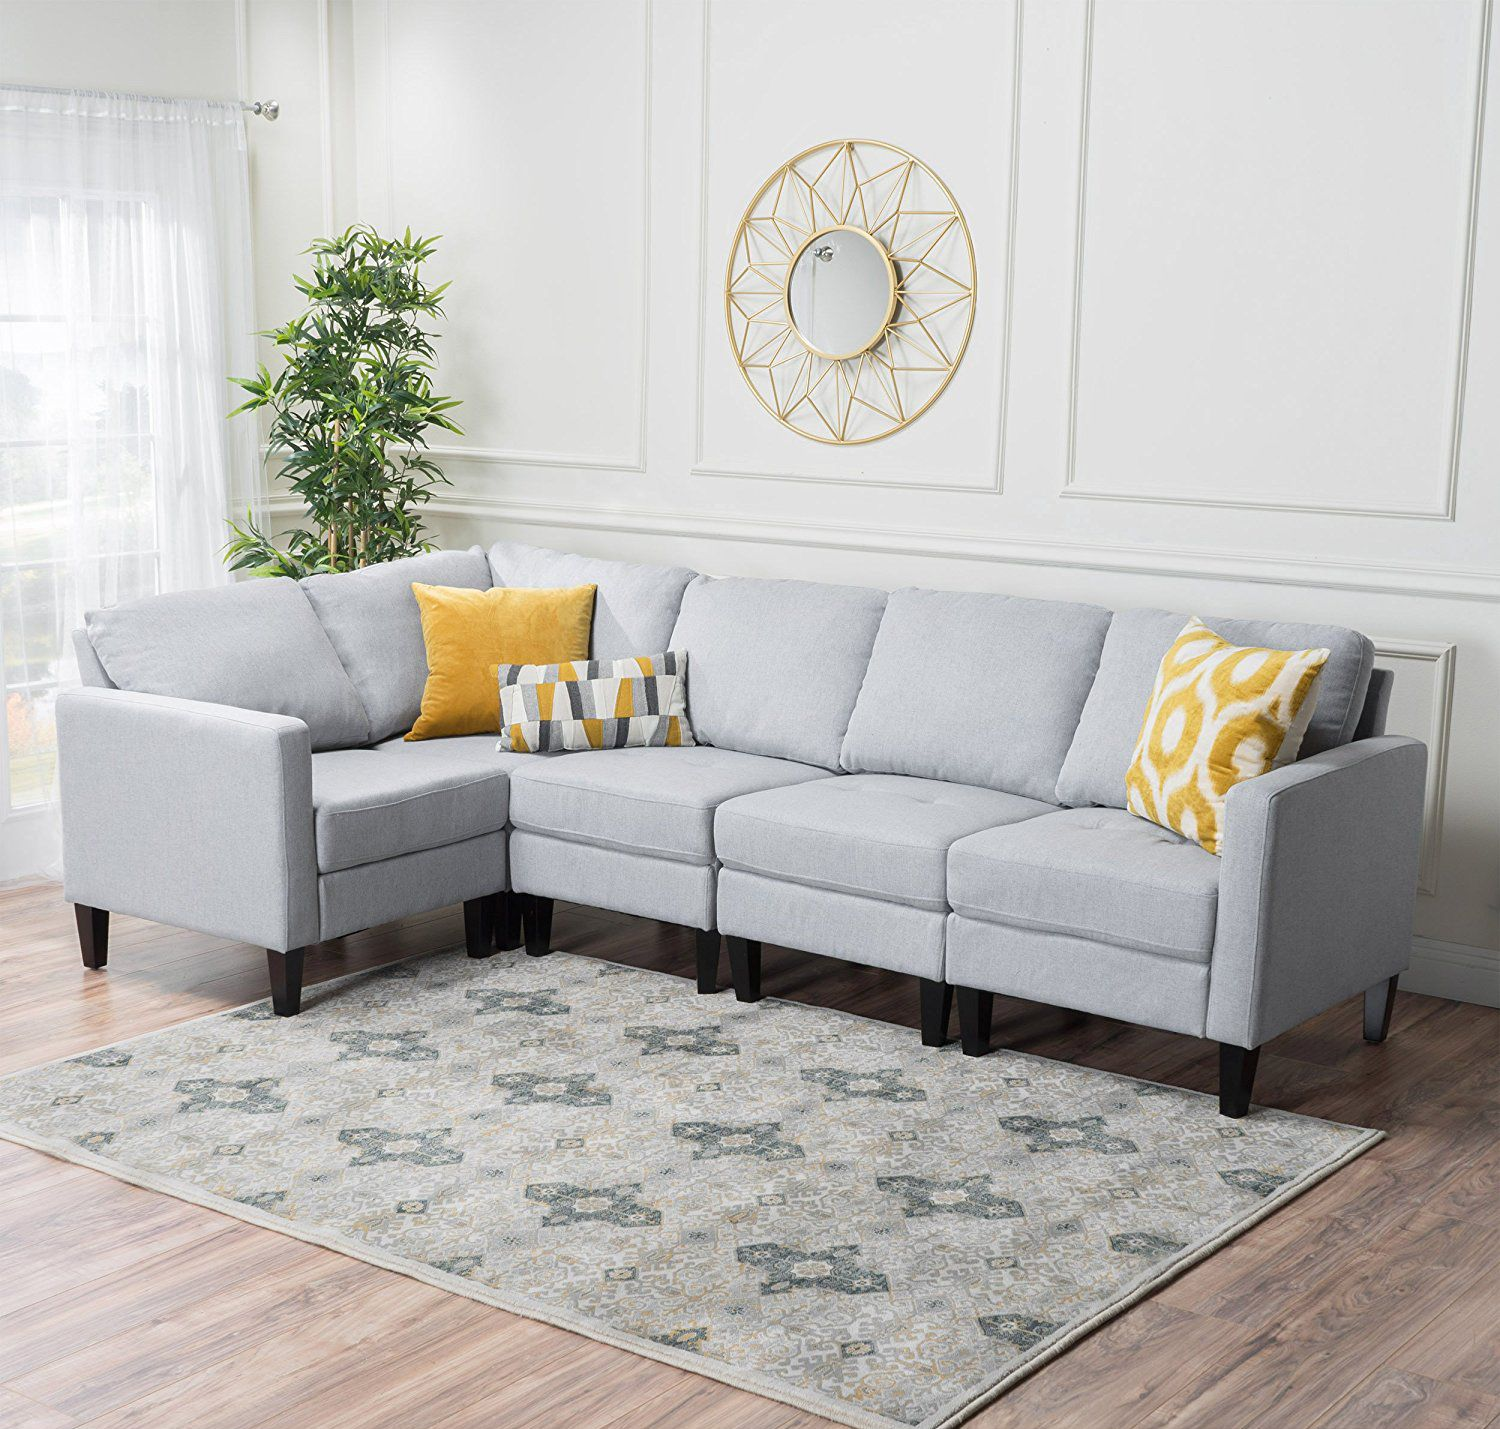 Best 12 Gray Sofas We Love Right Now Under 1 000 Couch With 640 x 480